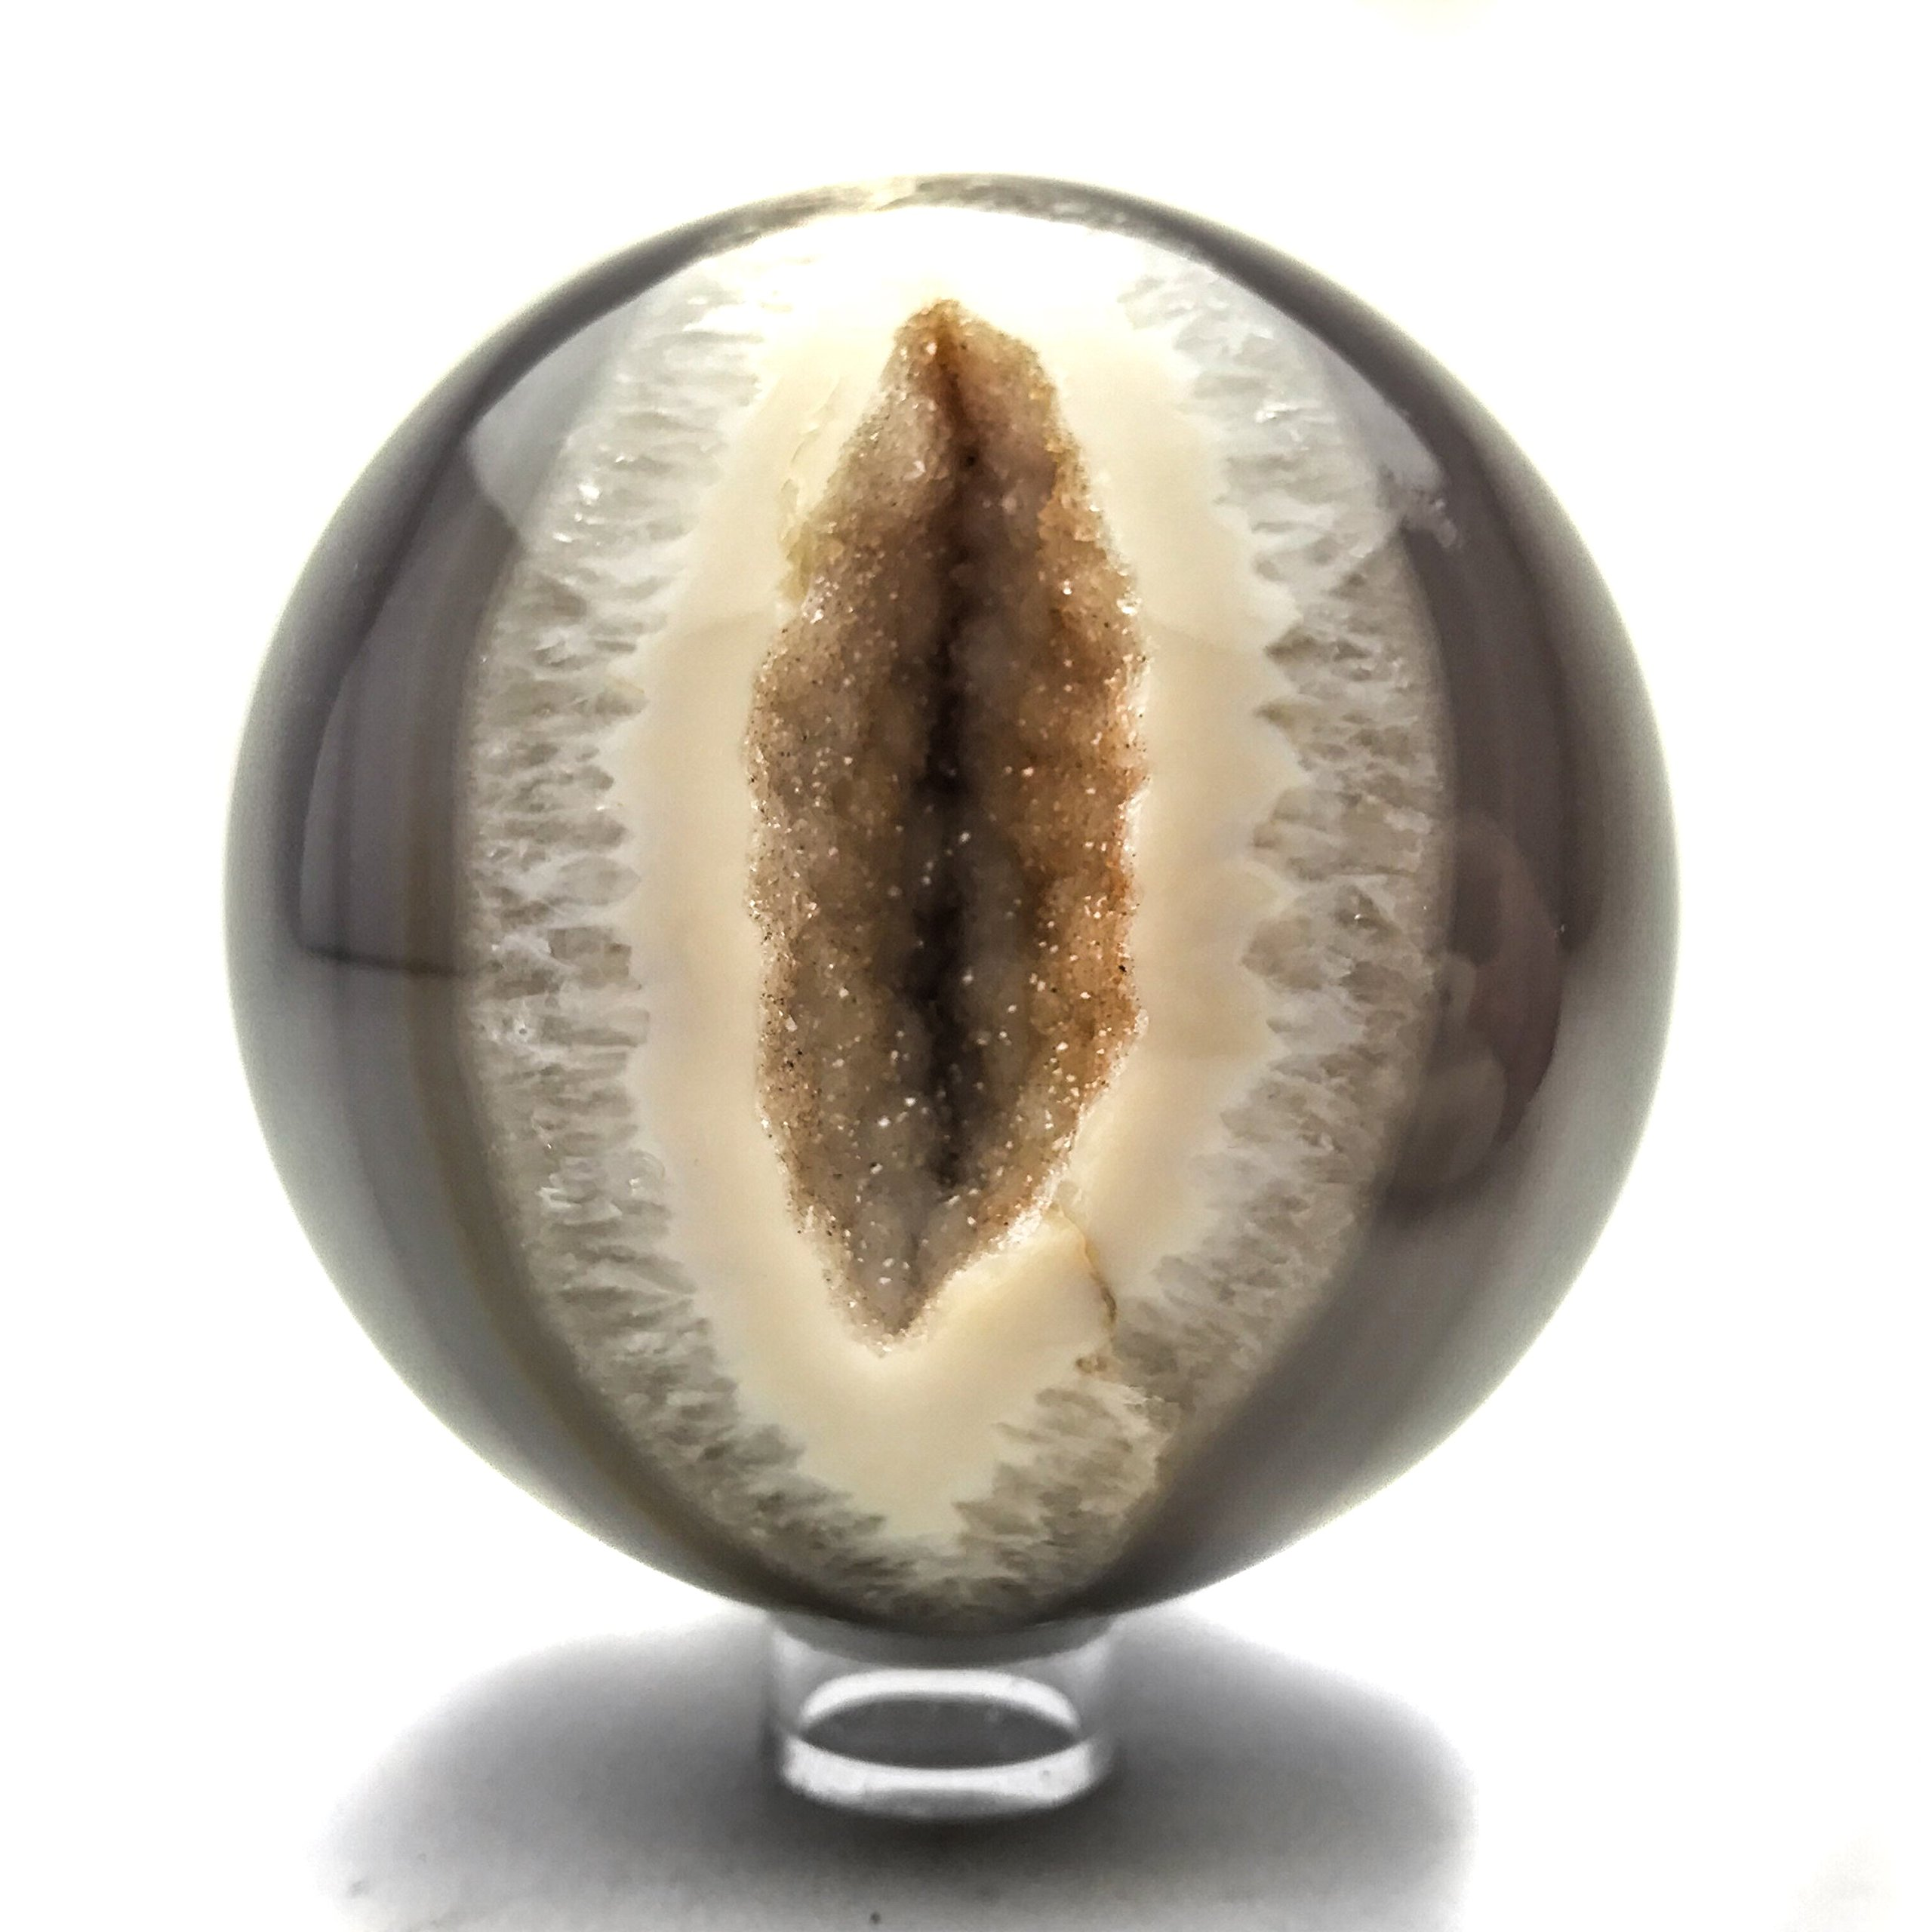 Astro Gallery Of Gems Natural Geode Agate Sphere (3.8'' diameter, 2.5 lbs) by Astro Gallery Of Gems